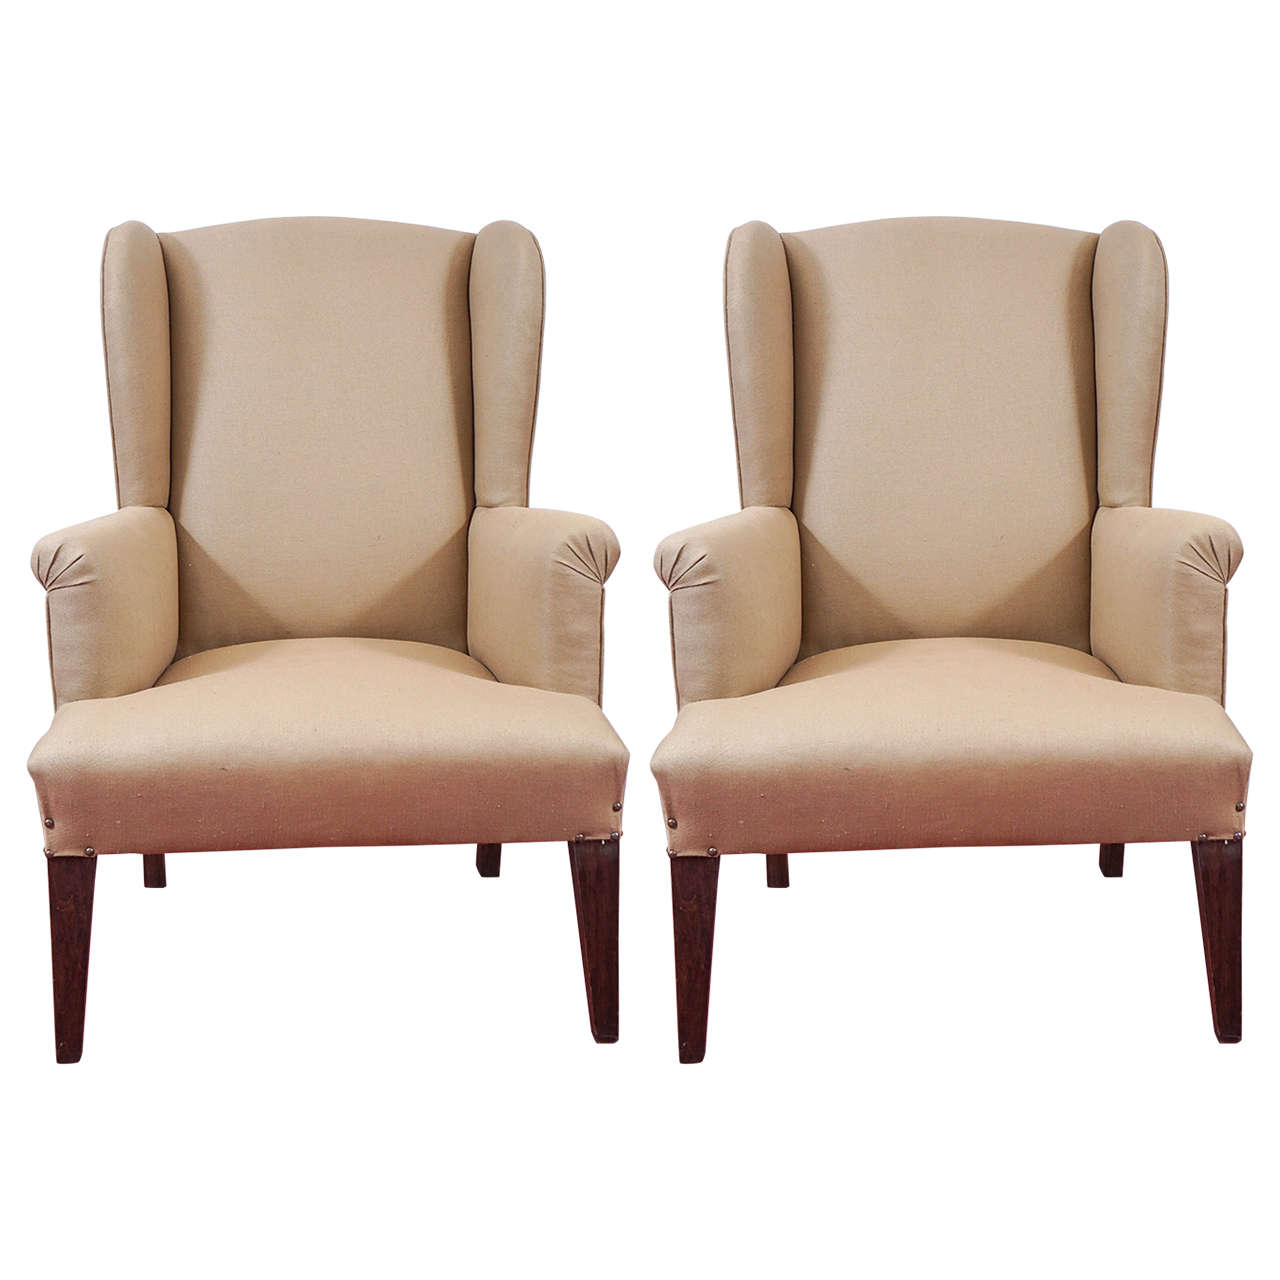 colonial wingback sofas tan leather sofa bed pair of chairs at 1stdibs